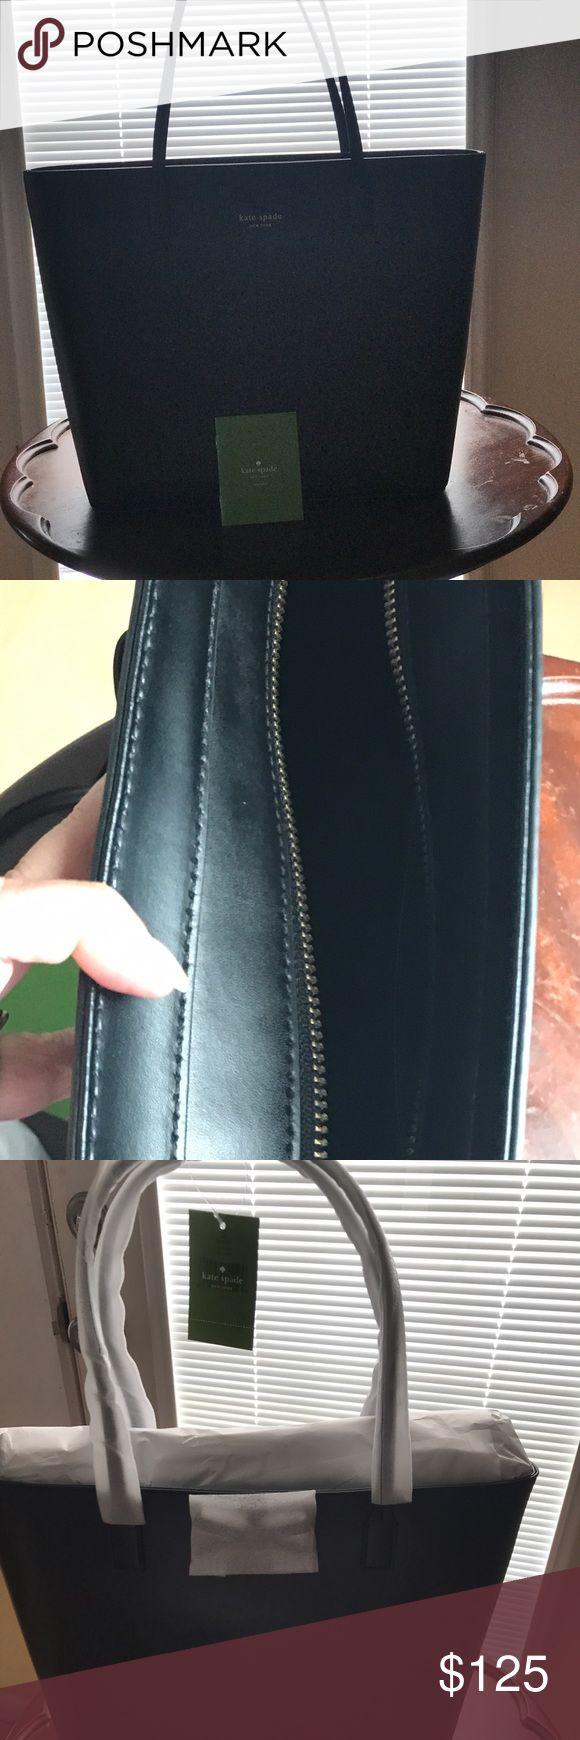 KATE SPADE SAWYER STREET TORI, BLACK Beautiful black leather bag/tote in just the right size. Wrappings removed for photos. New never used! kate spade Bags Totes